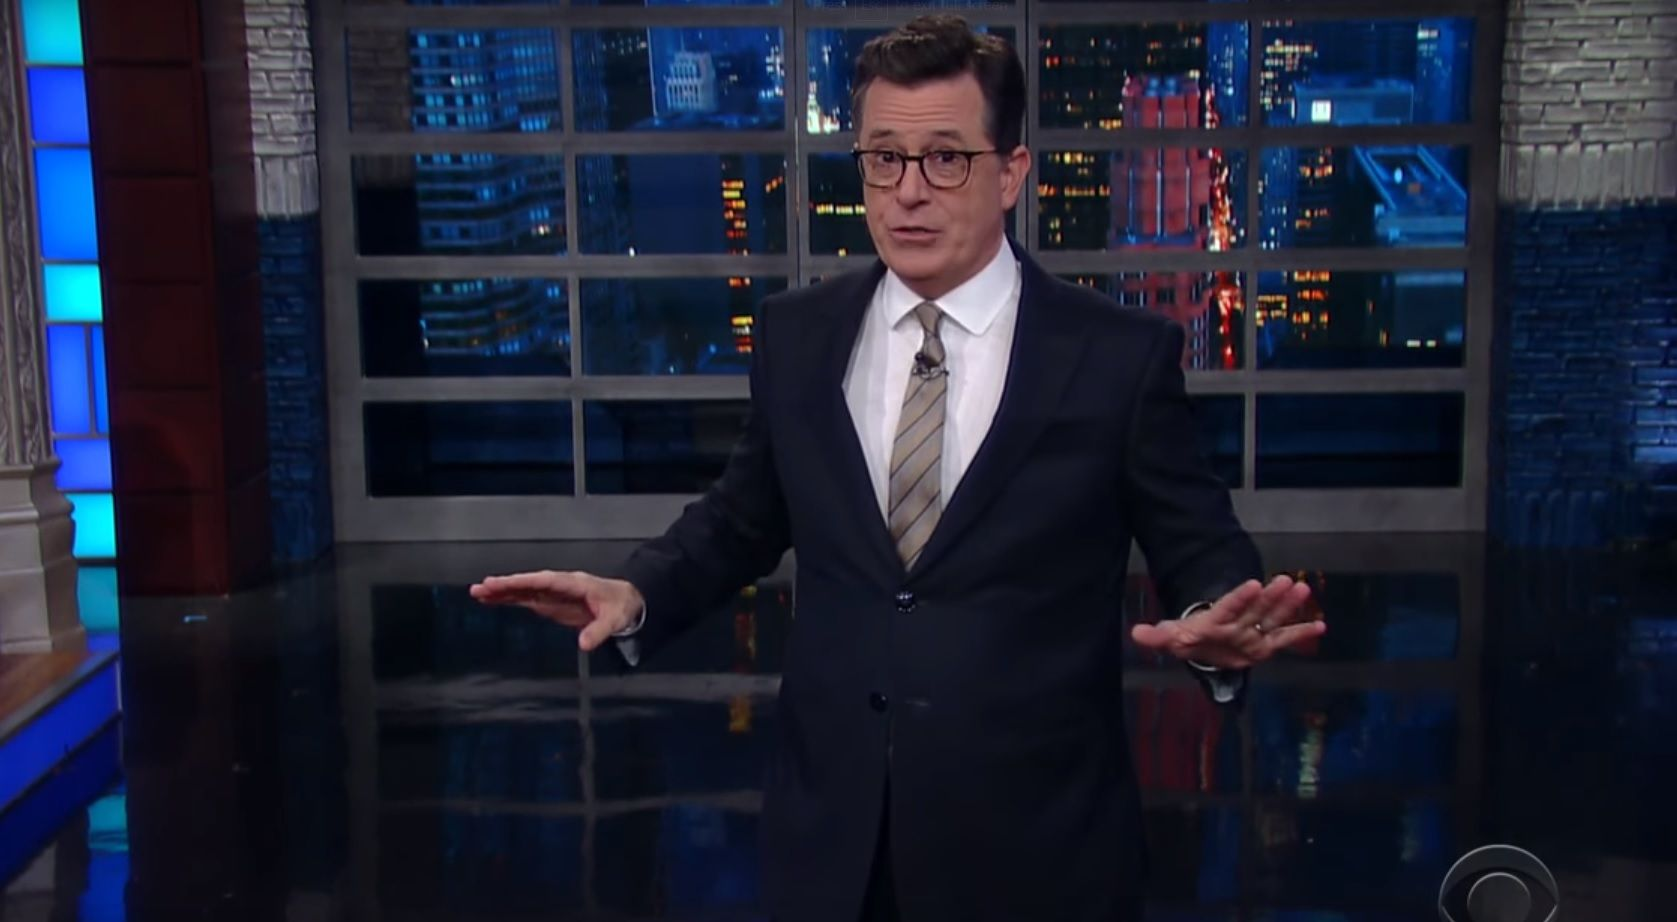 Stephen Colbert on Trump obstruction of justice